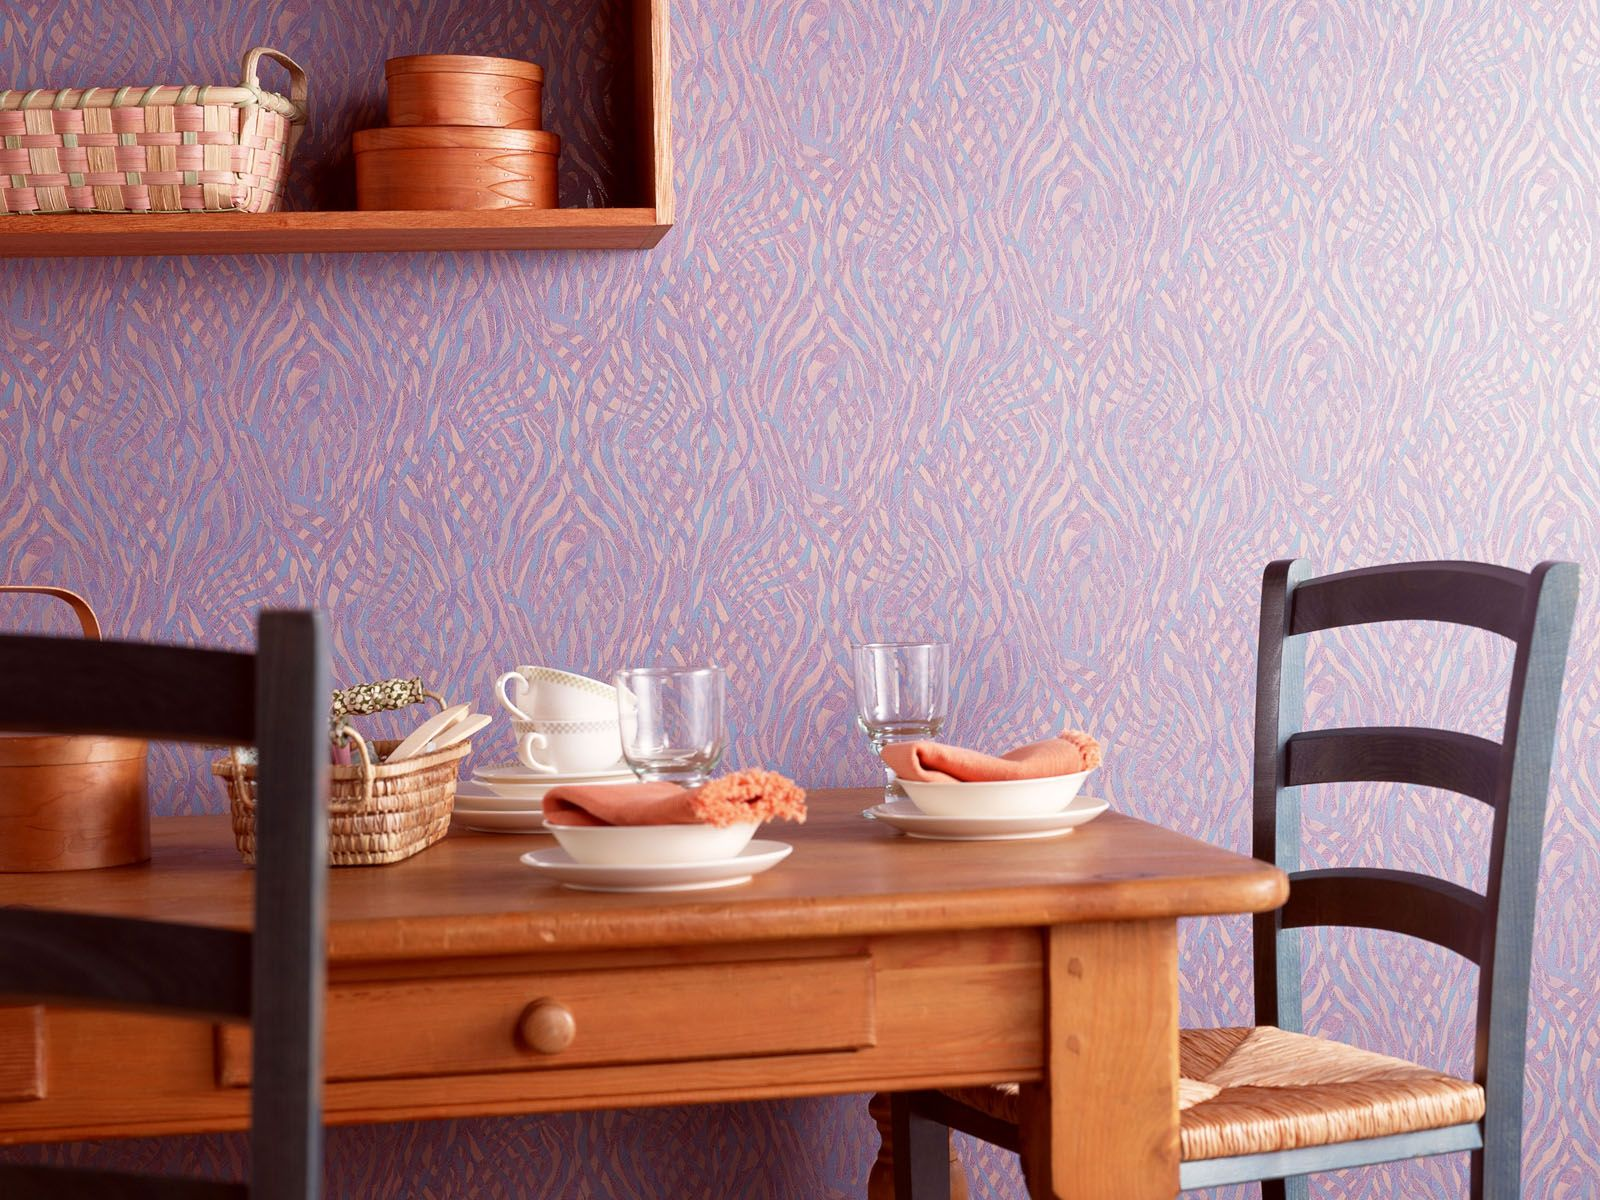 Dining Set With Pastel Wallpaper Background